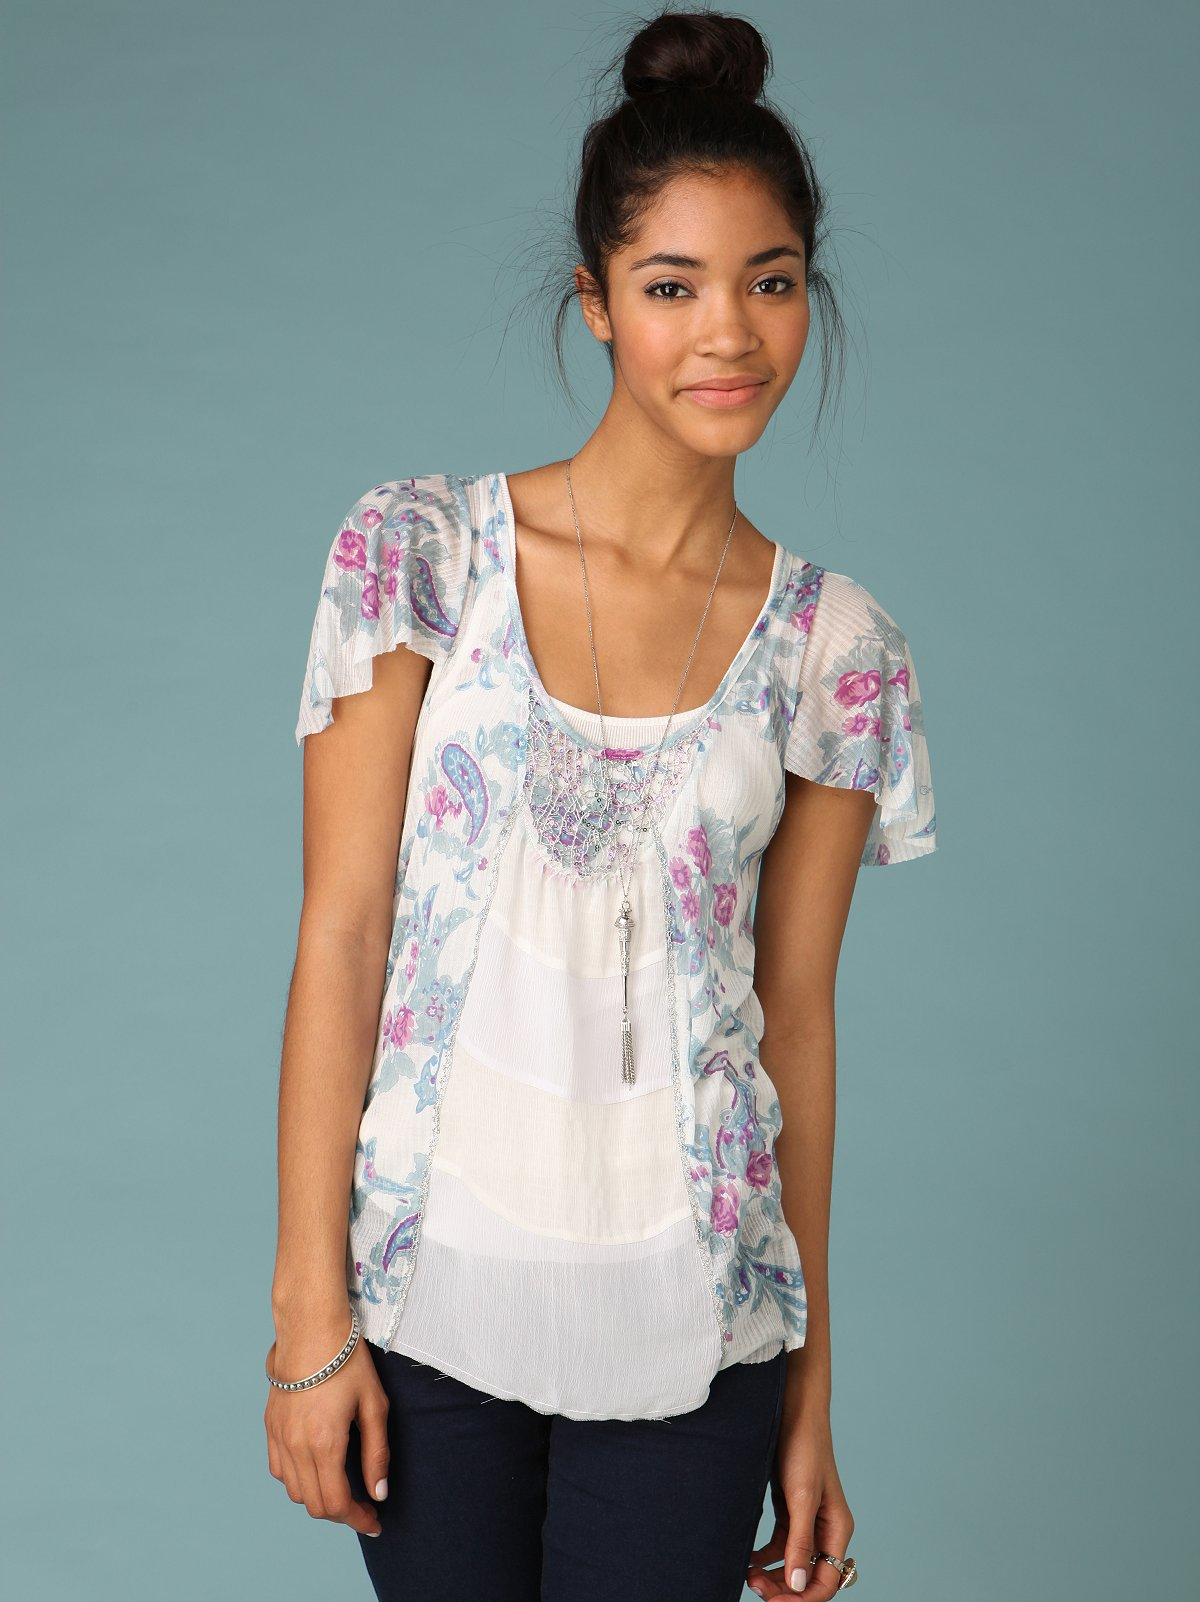 Dehli Blooms Top